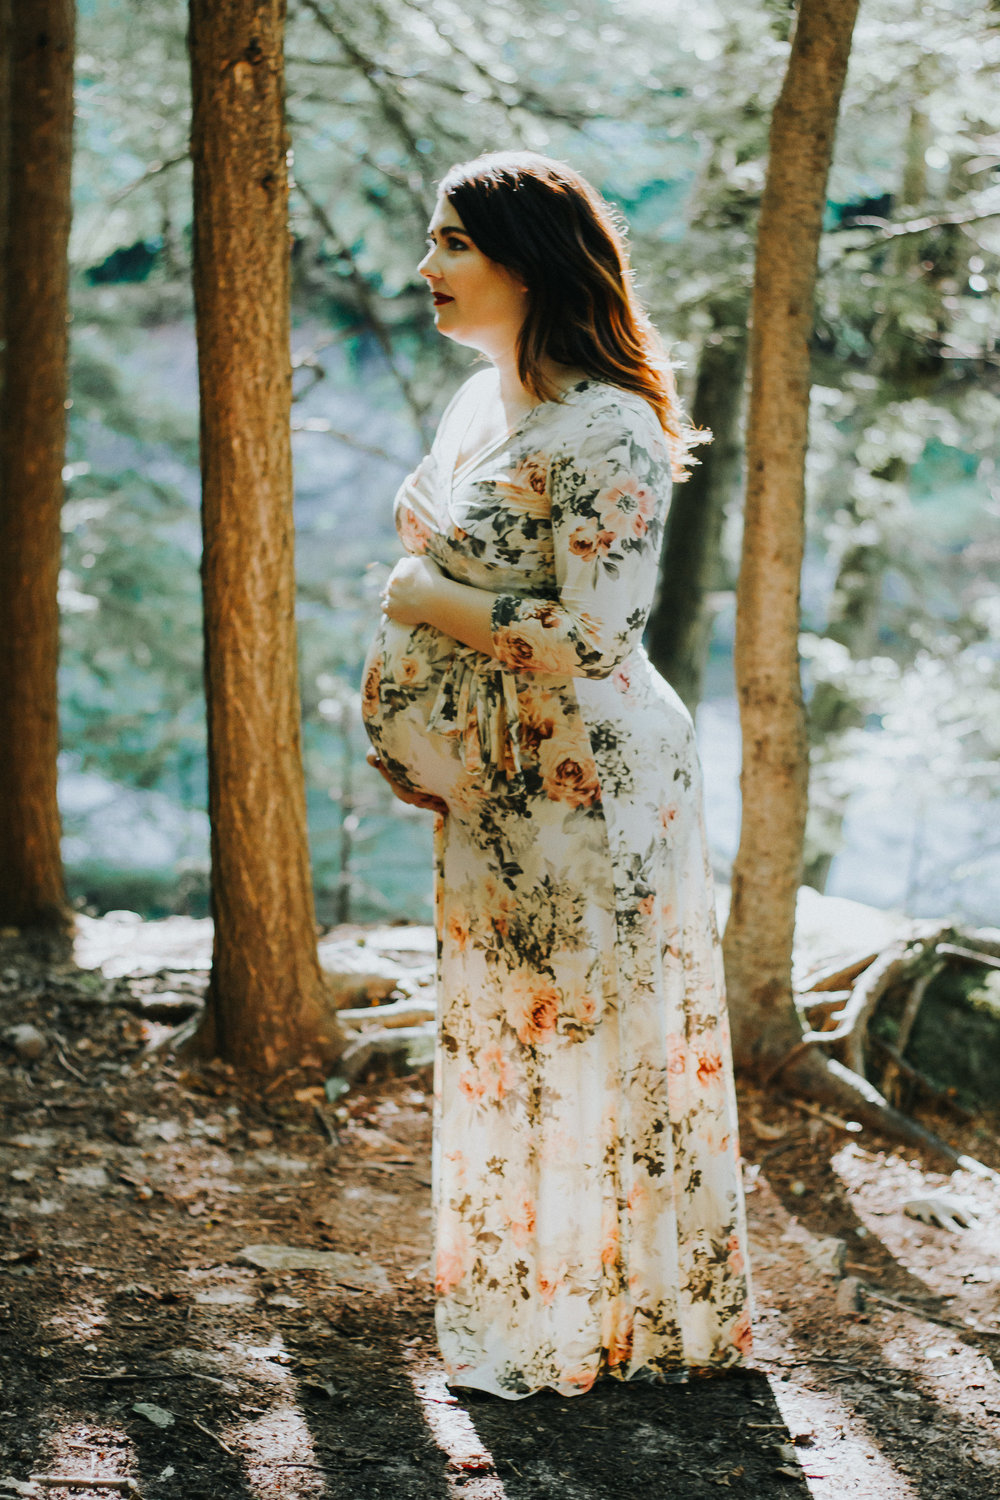 Mom to be holding pregnant belly, Artistic + Woodsy Maternity Session | Sarah P Thomas Photography